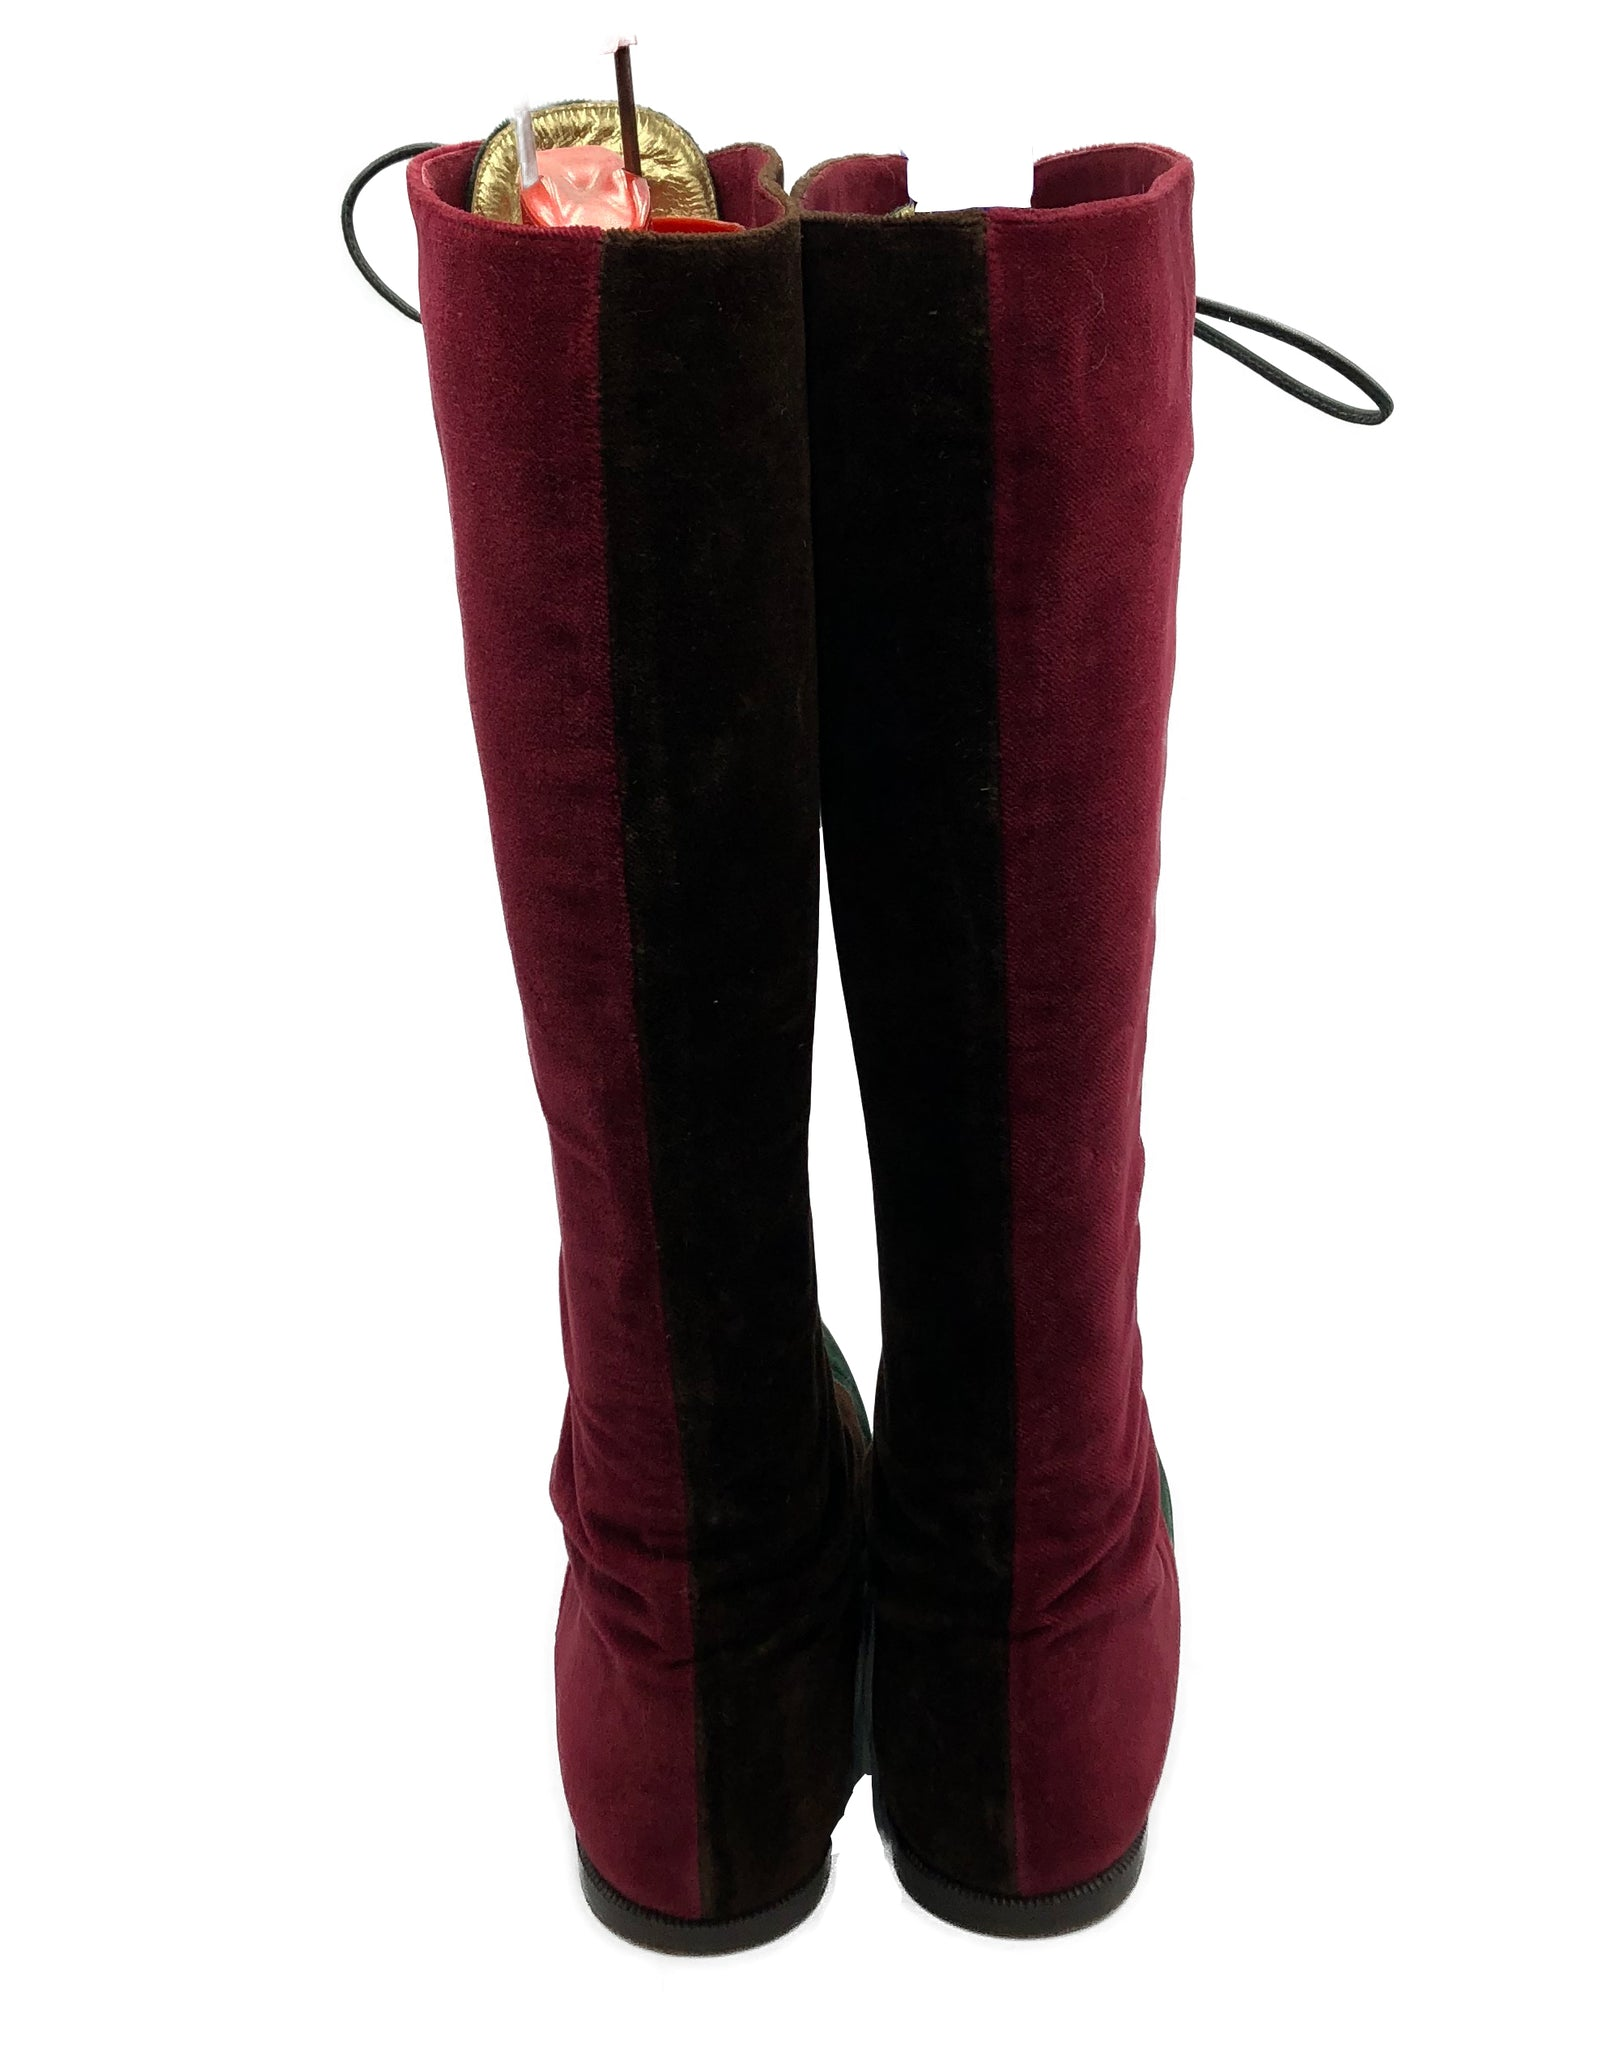 90s Two Tone Velvet Boots 3 of 4